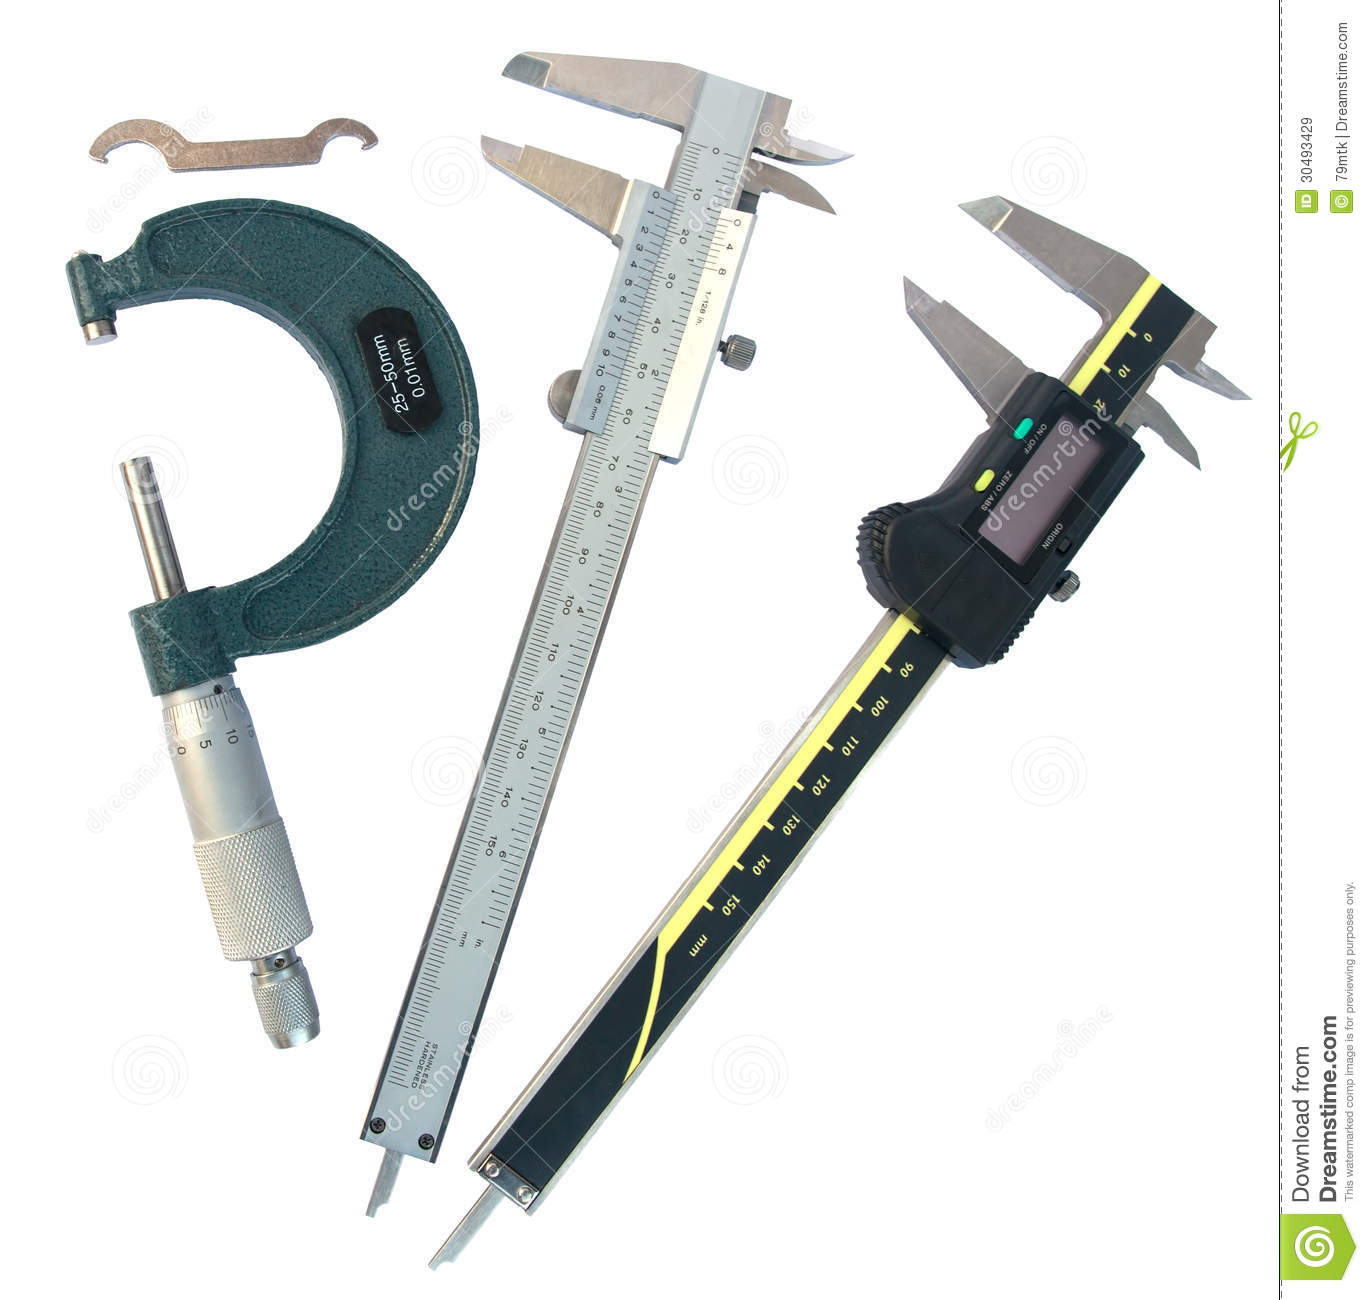 Experiments Instruments Measurement: Micrometer And Vernier Caliper (with Clipping Paths) Stock